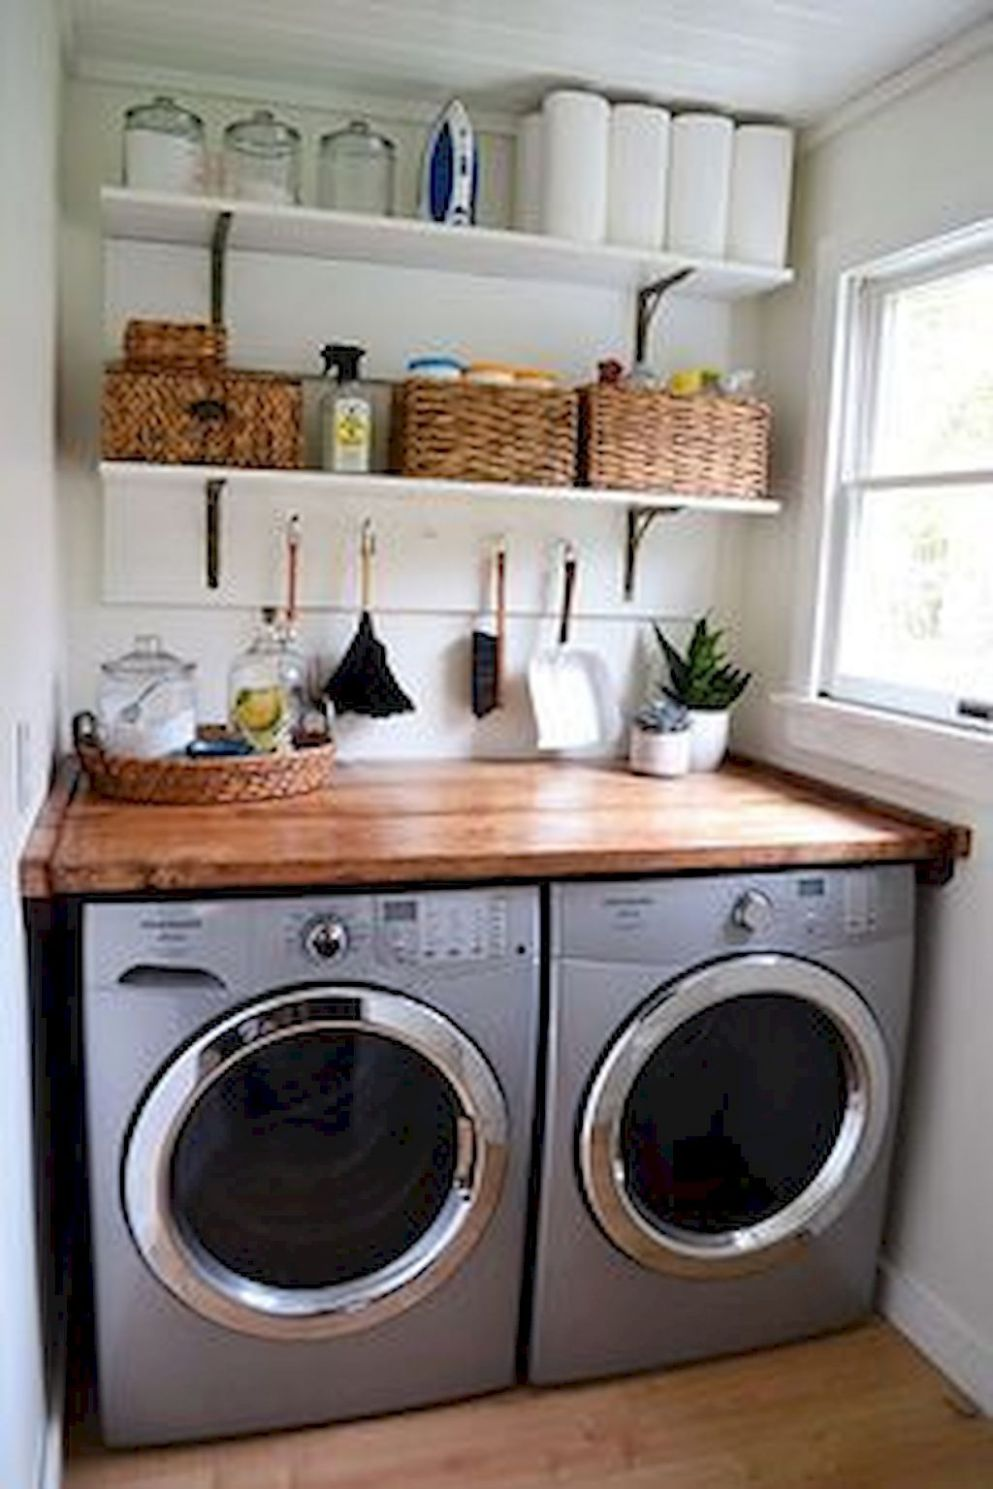 9 First Apartment Laundry Room Decor Ideas Remodel | Laundry room ..